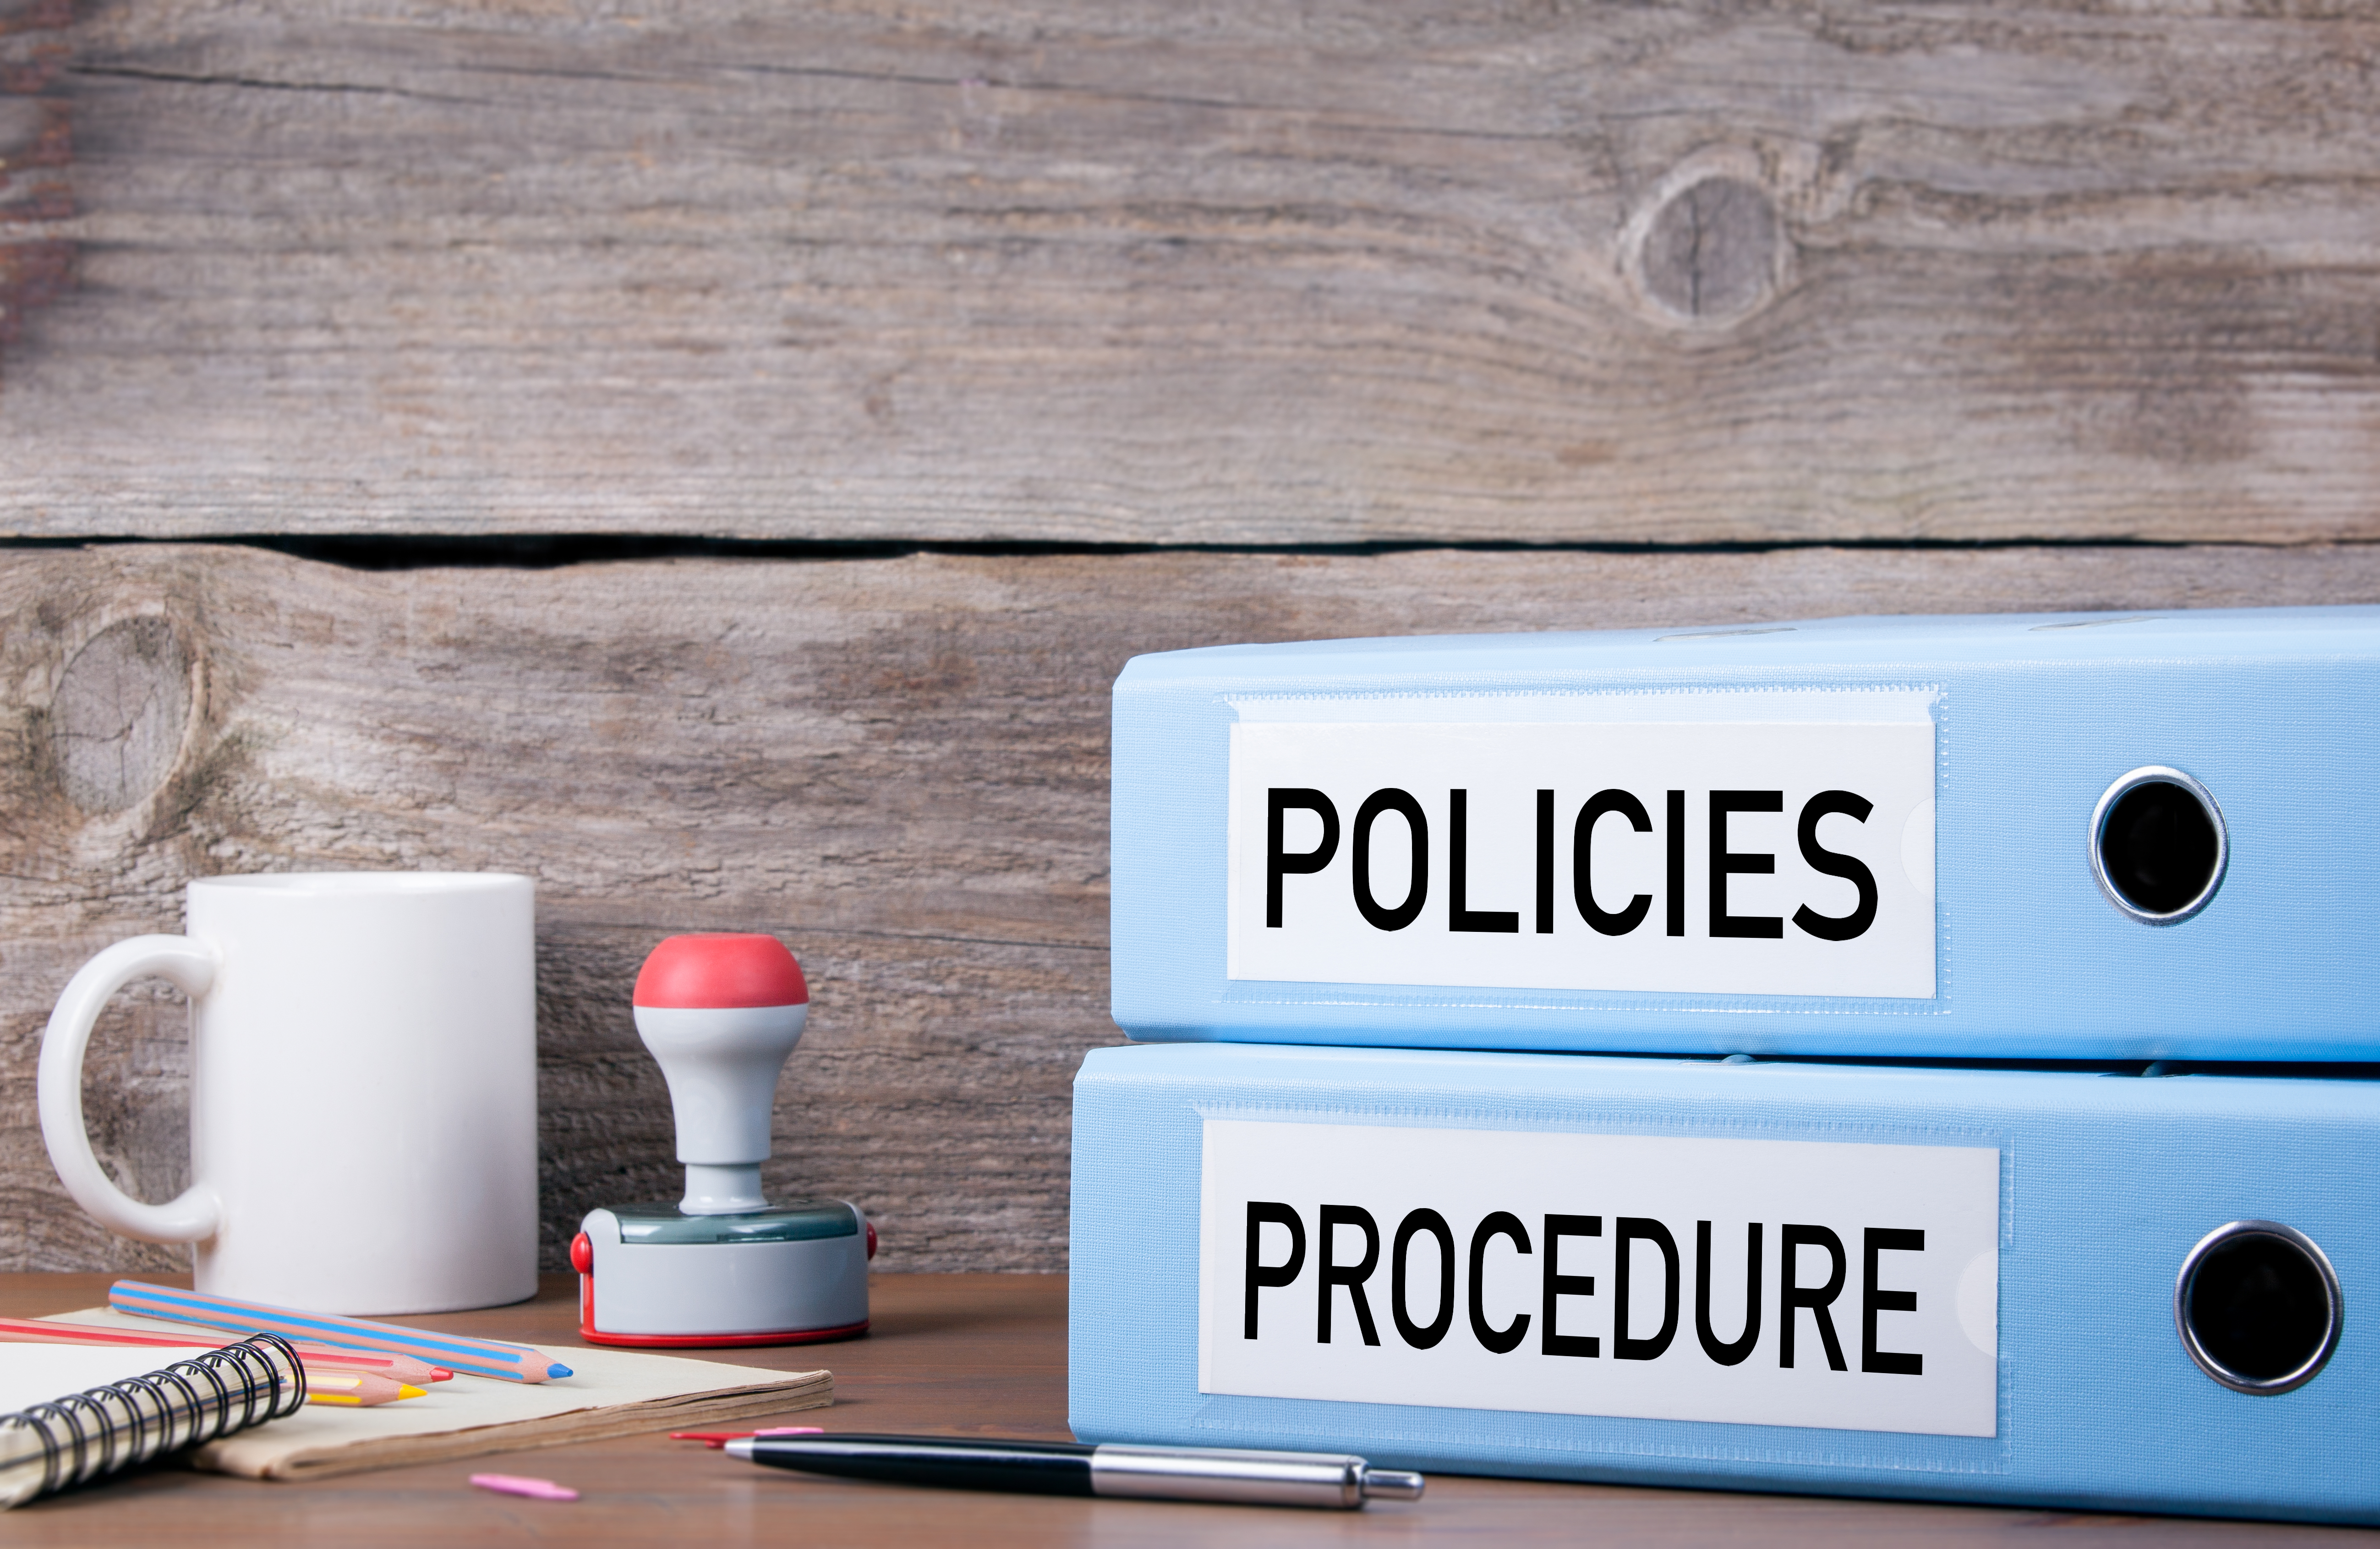 policies and procedure notebooks